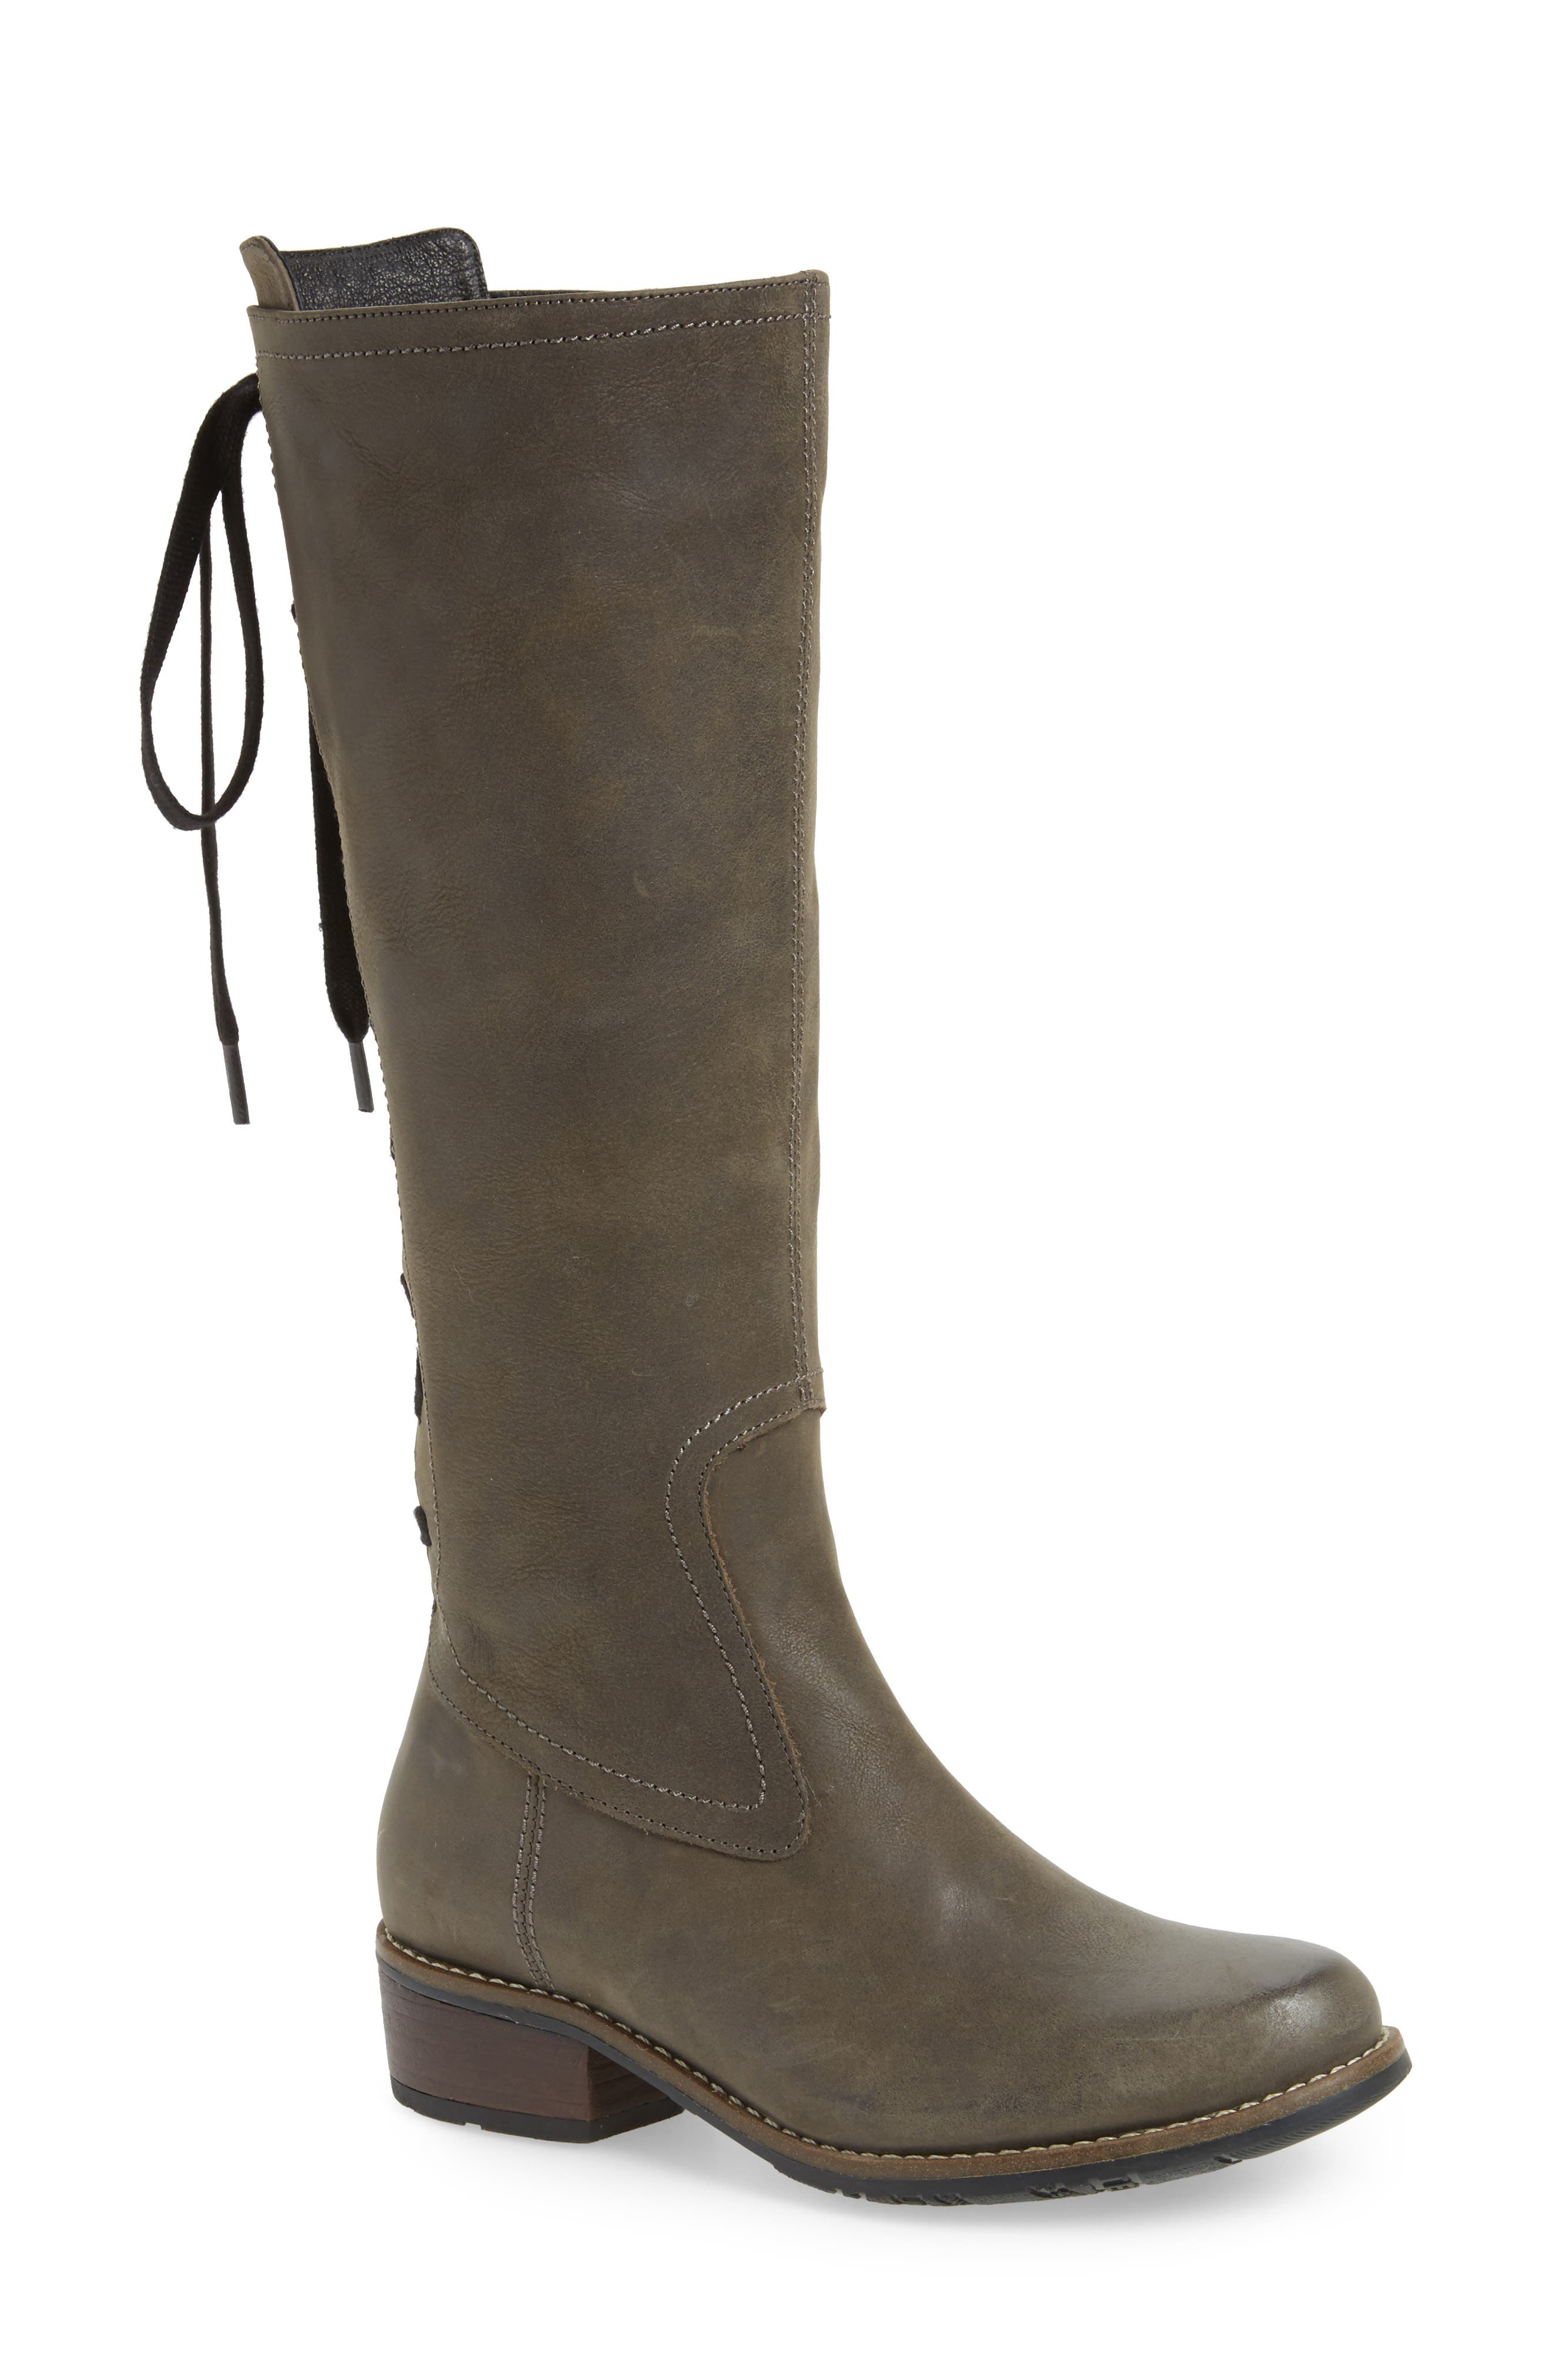 Wolky Pardo Boot - Grey